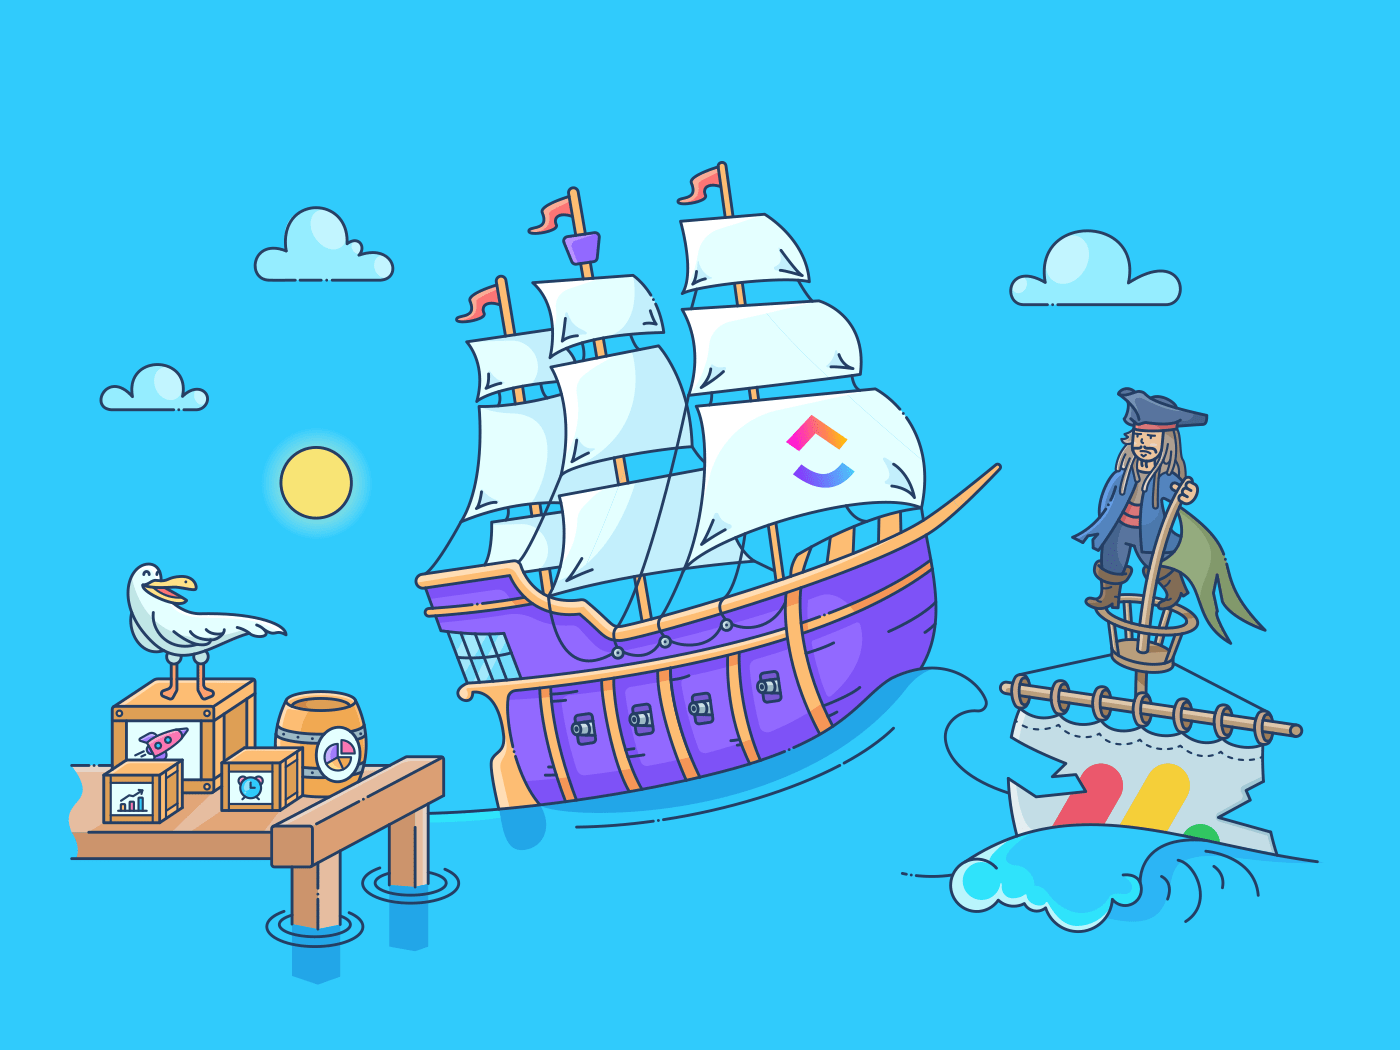 ClickUp pirate ship